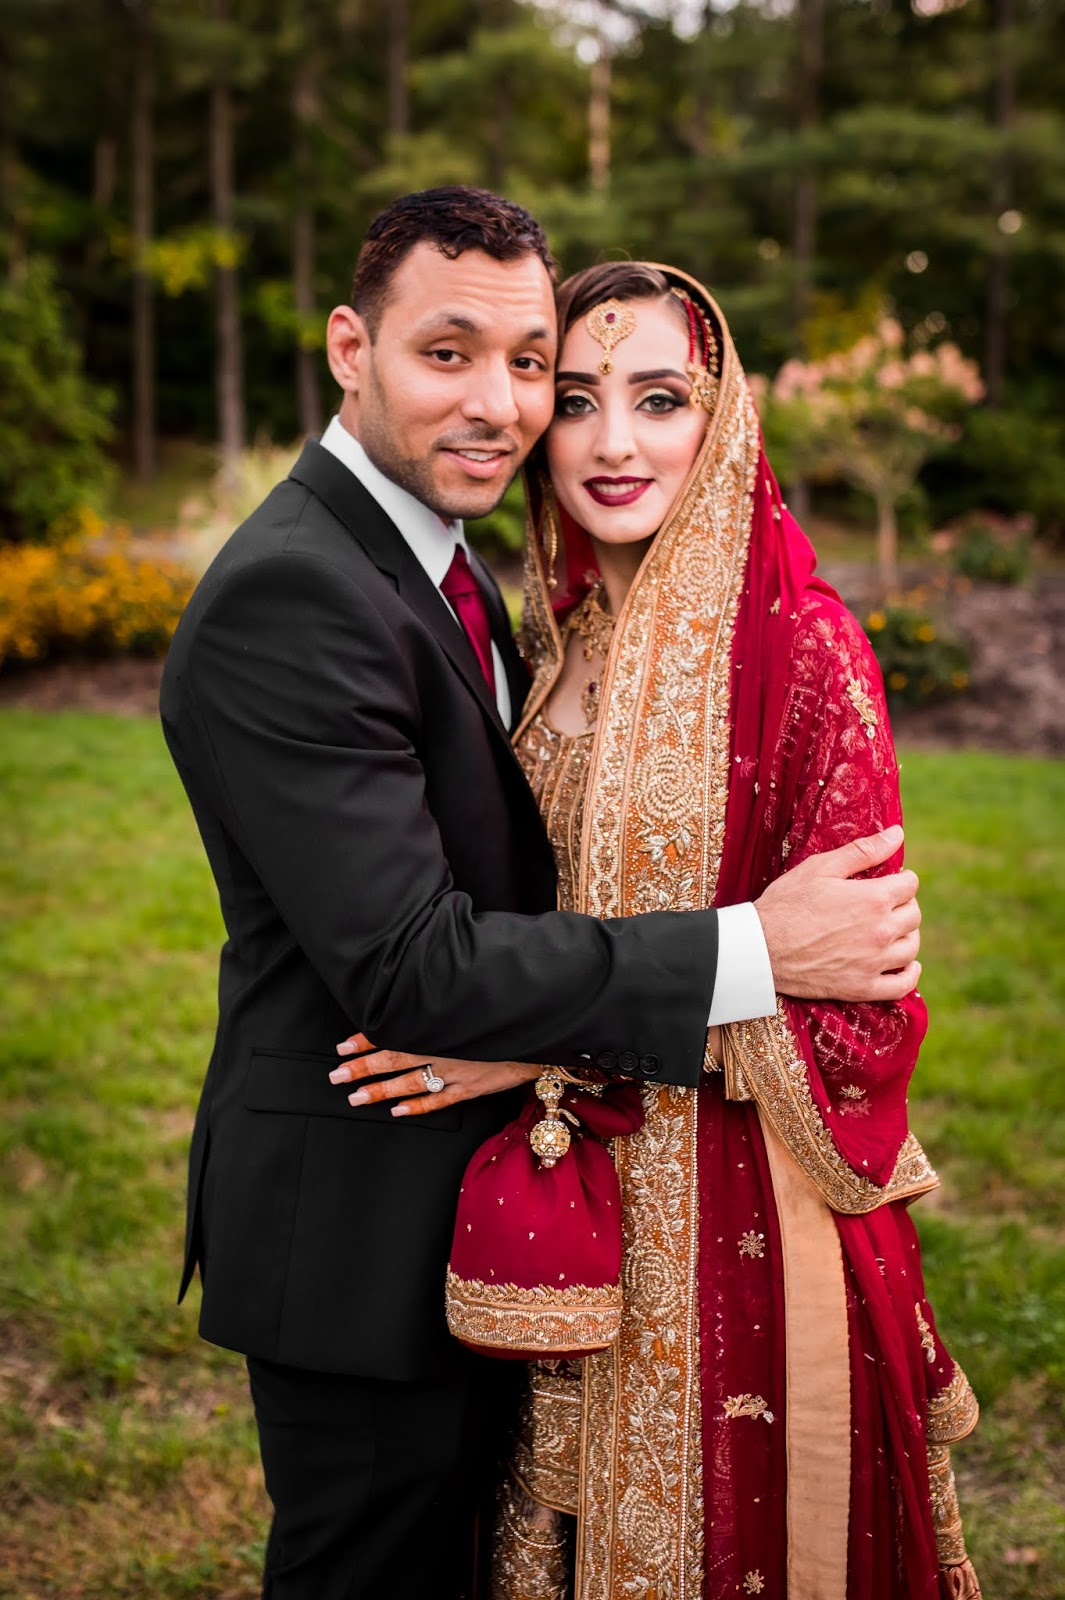 Couple happy to achieve their dreams together